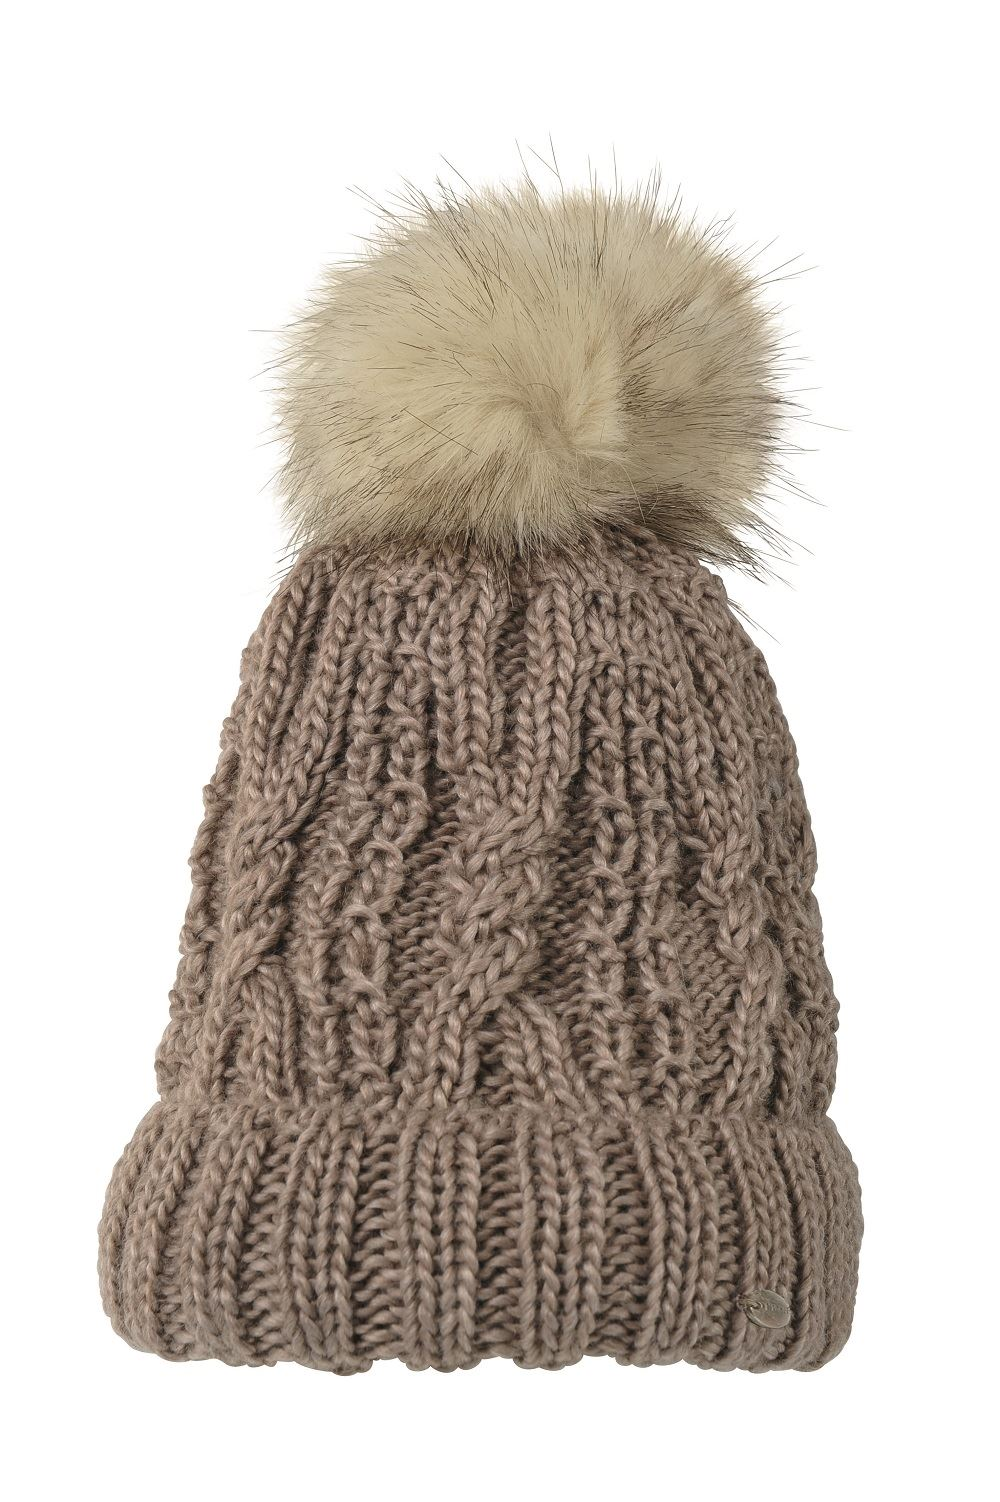 7a80062a7ac Pikeur Bobble Hat - 80500 Choice of Colours Light Taupe